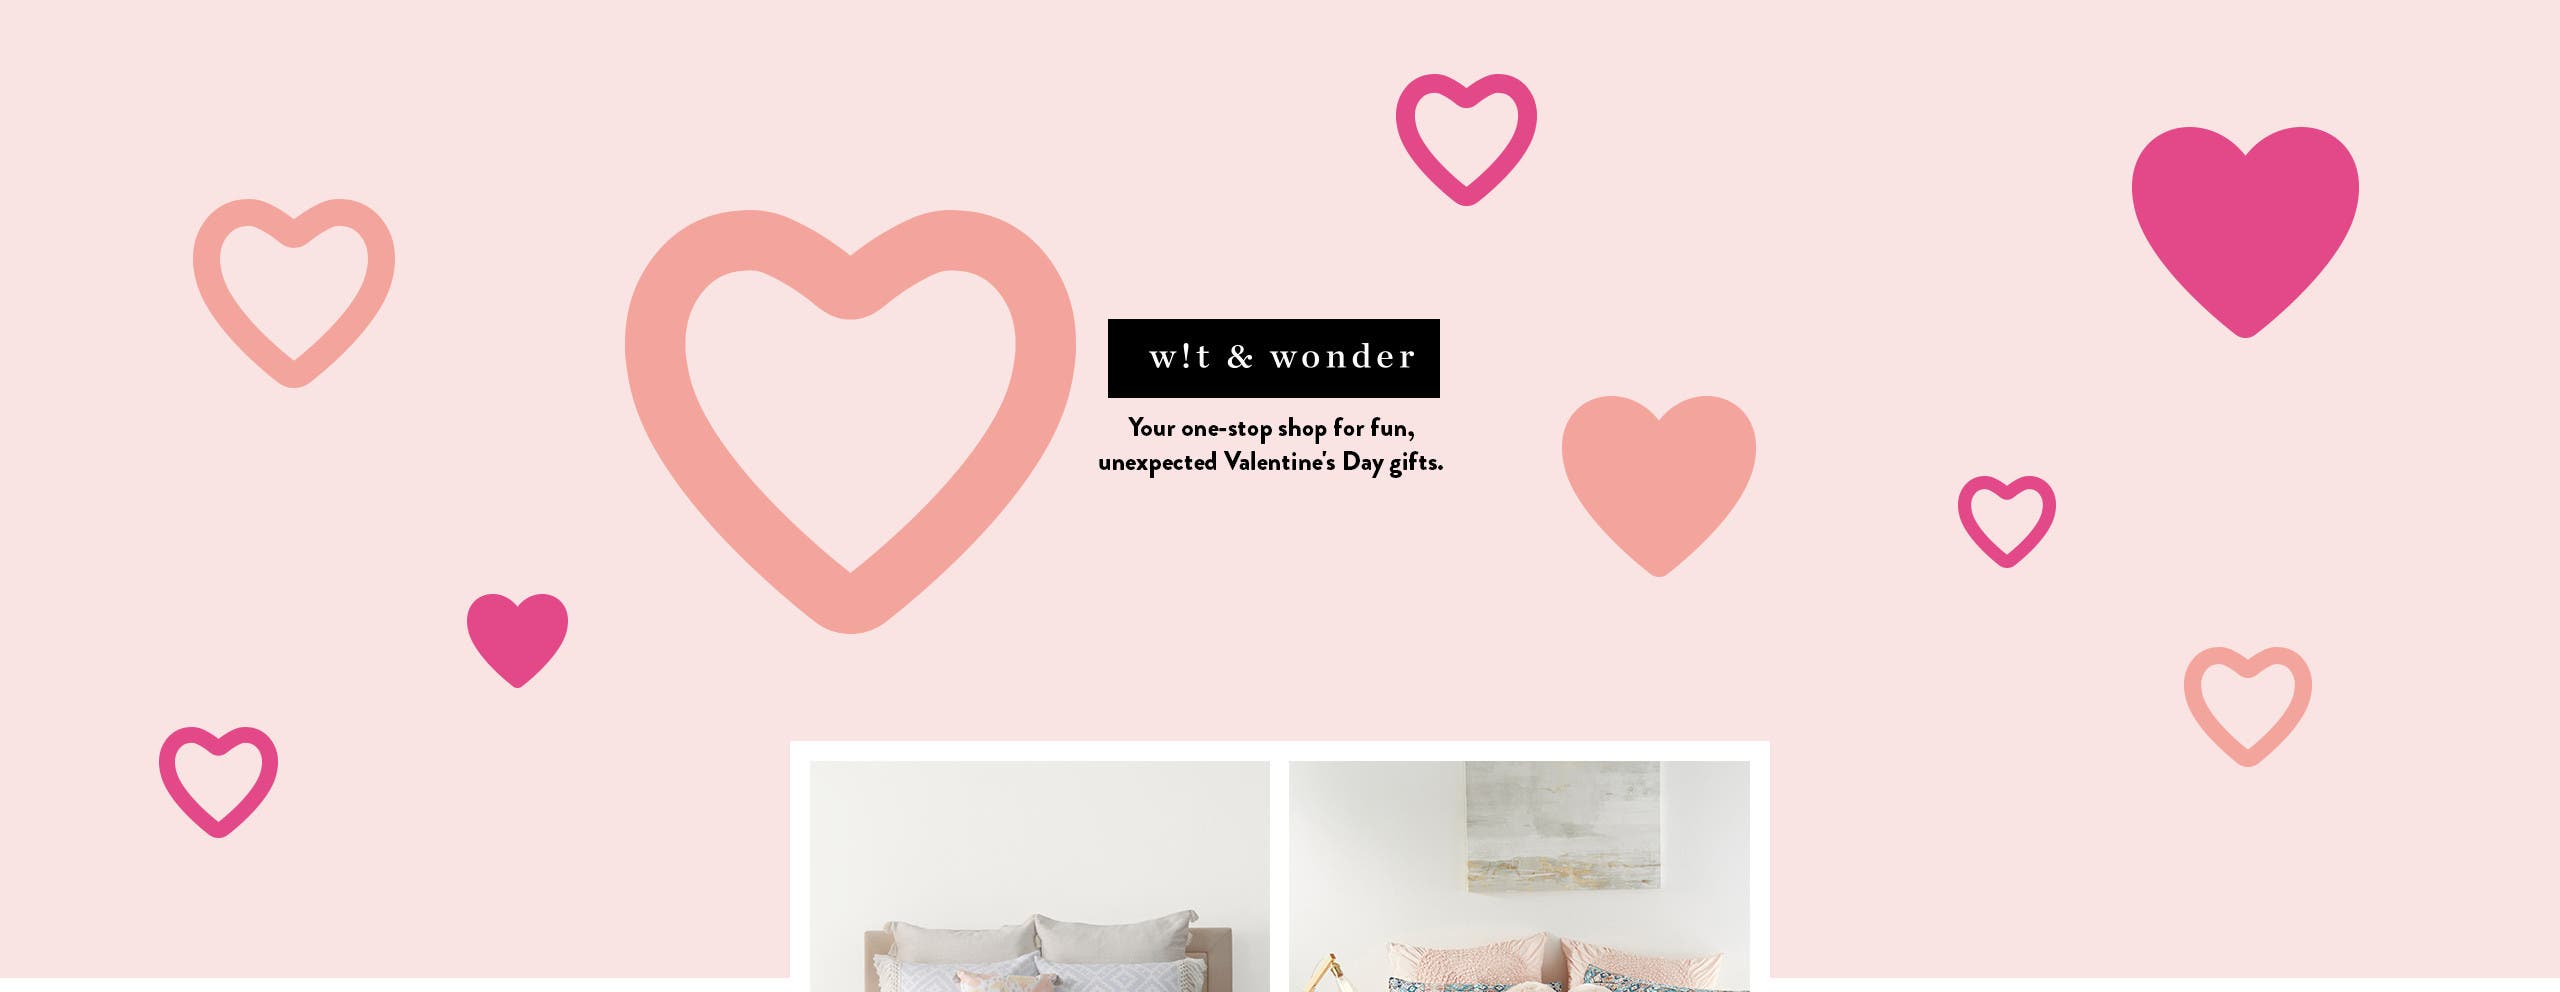 Wit and wonder: Valentine's day gifts.